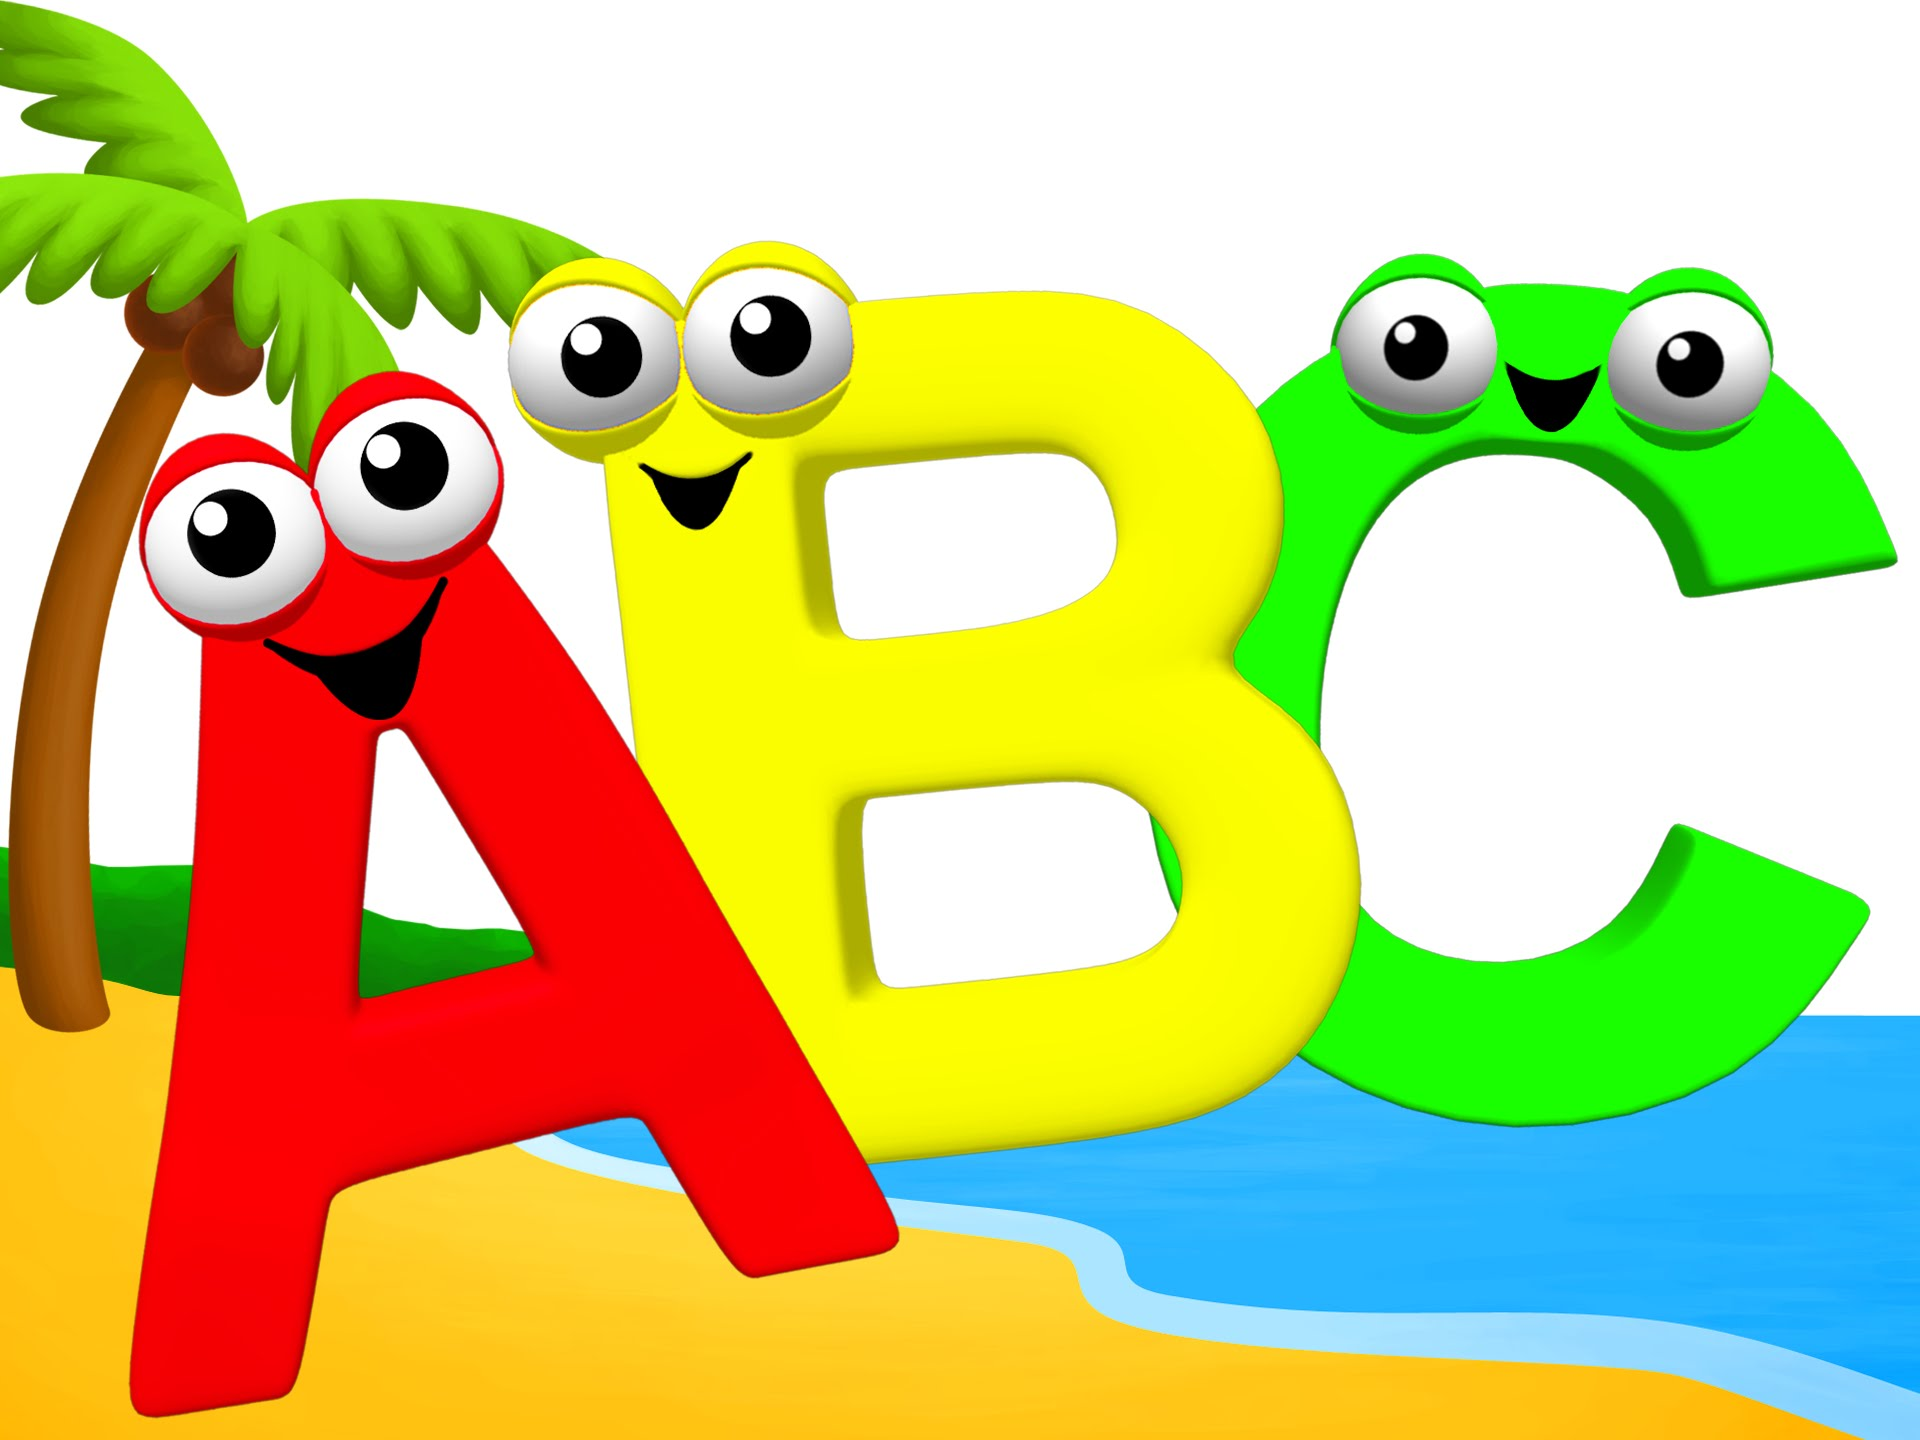 Abc Clipart Alphabetical Order  Abc Alphabetical Order